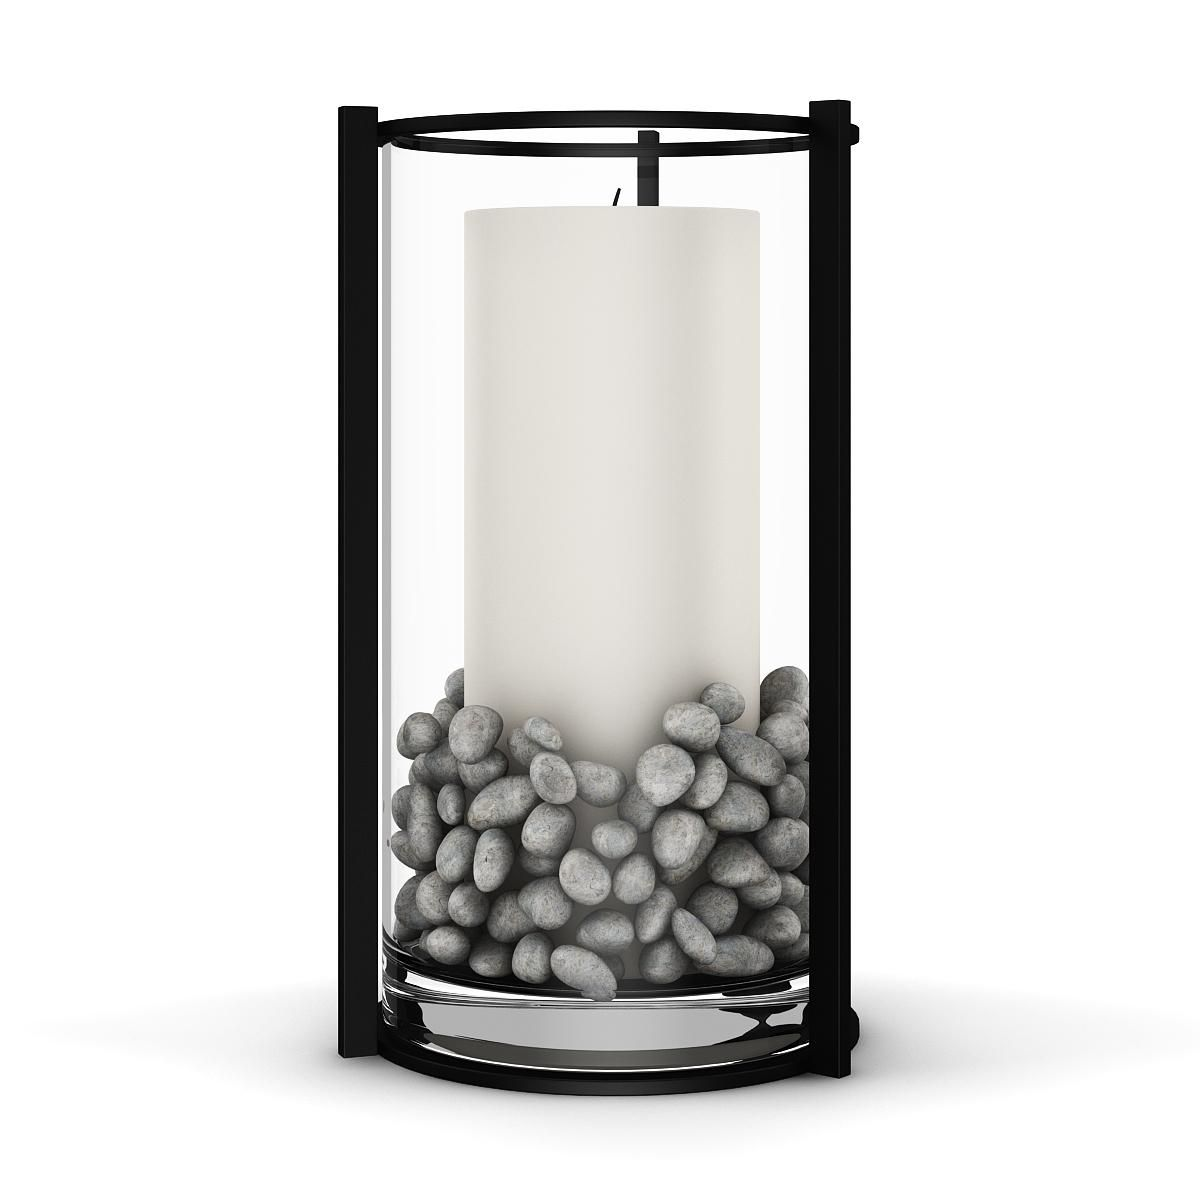 White Candle In Glass 3d Model Ad Candle White Model Glass White Candles Candles Glass